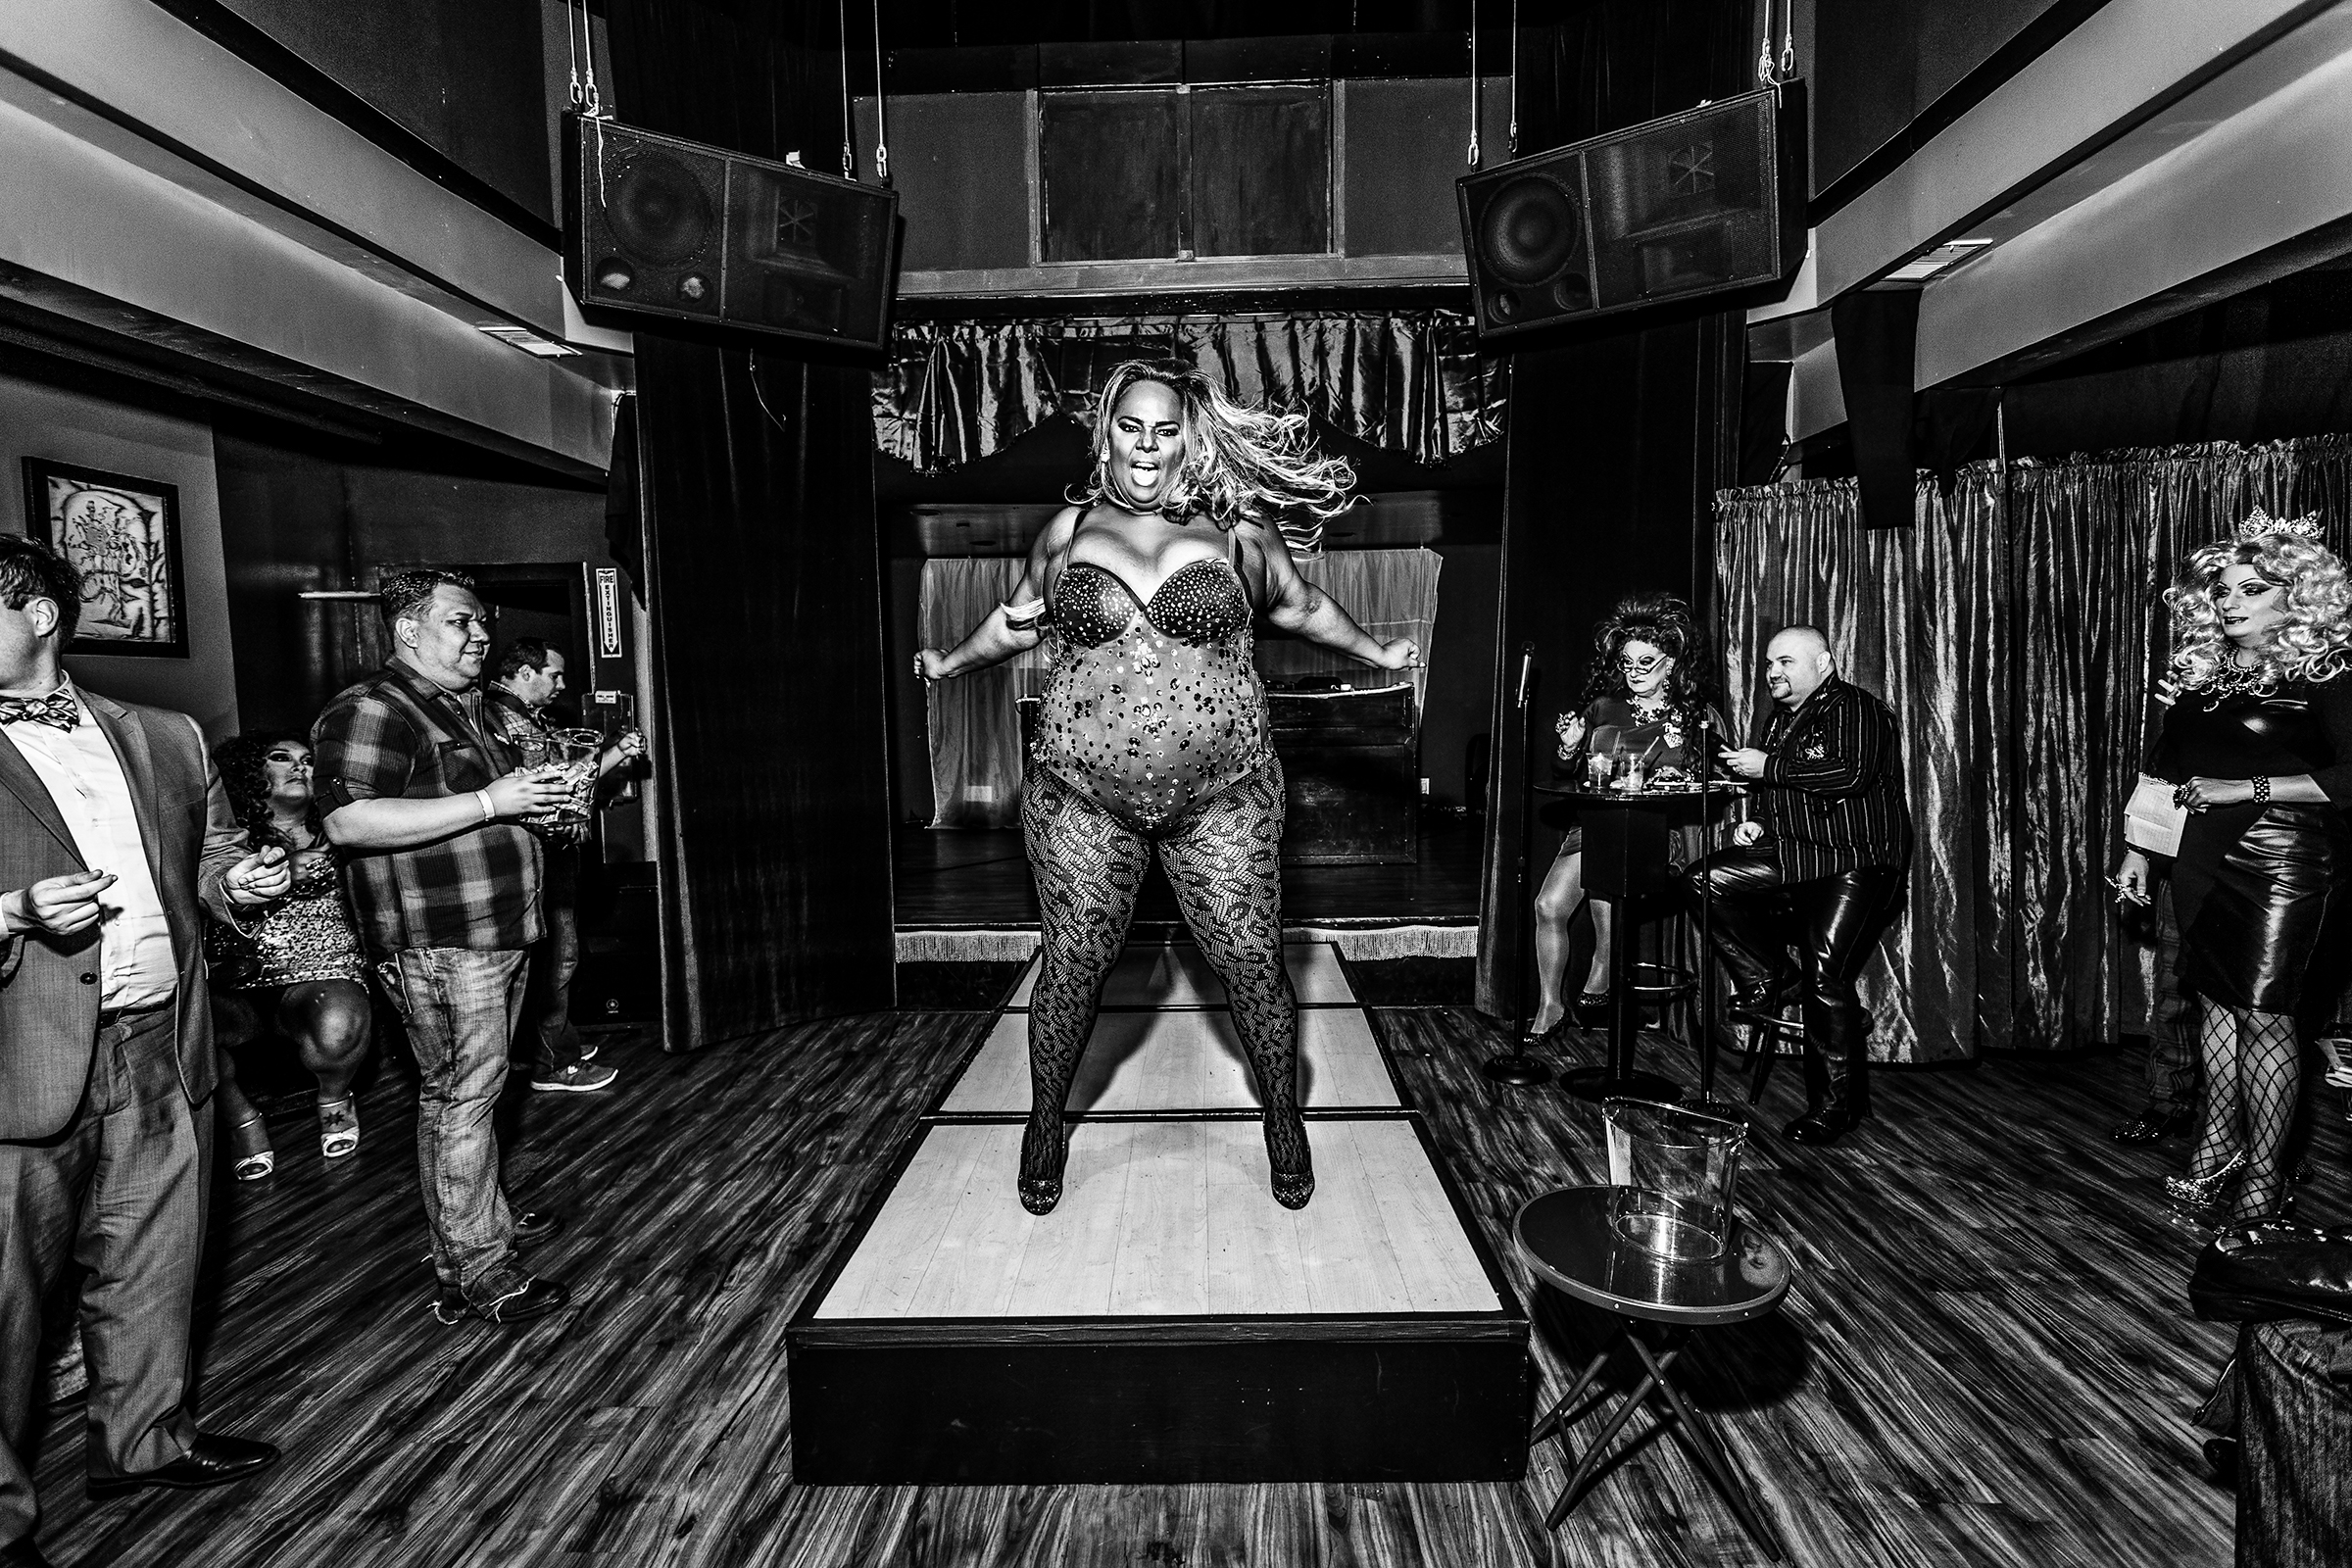 Beyonce DeLuxe Black St-James, based in Seattle, performs at a drag show in San Francisco on February 14th, 2015. The event was hosted by the Imperial Court of San Francisco.